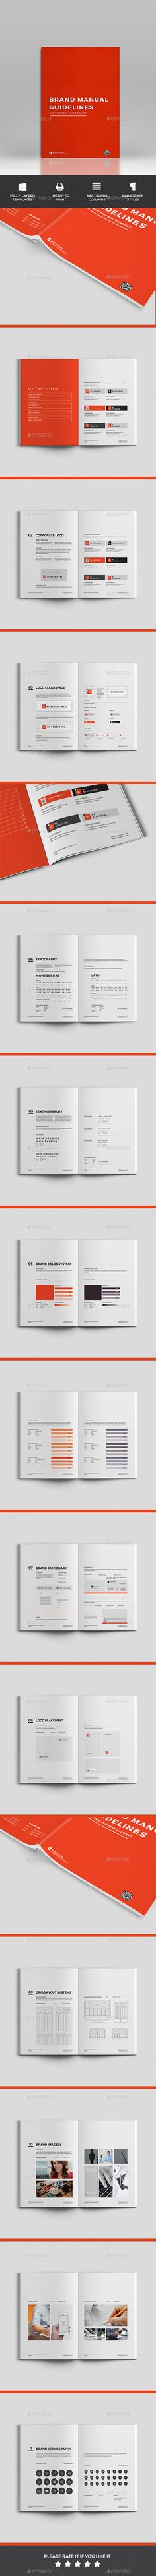 Brand Manual Template #design Buy Now: http://graphicriver.net/item/brand-manual/12874464?ref=ksioks